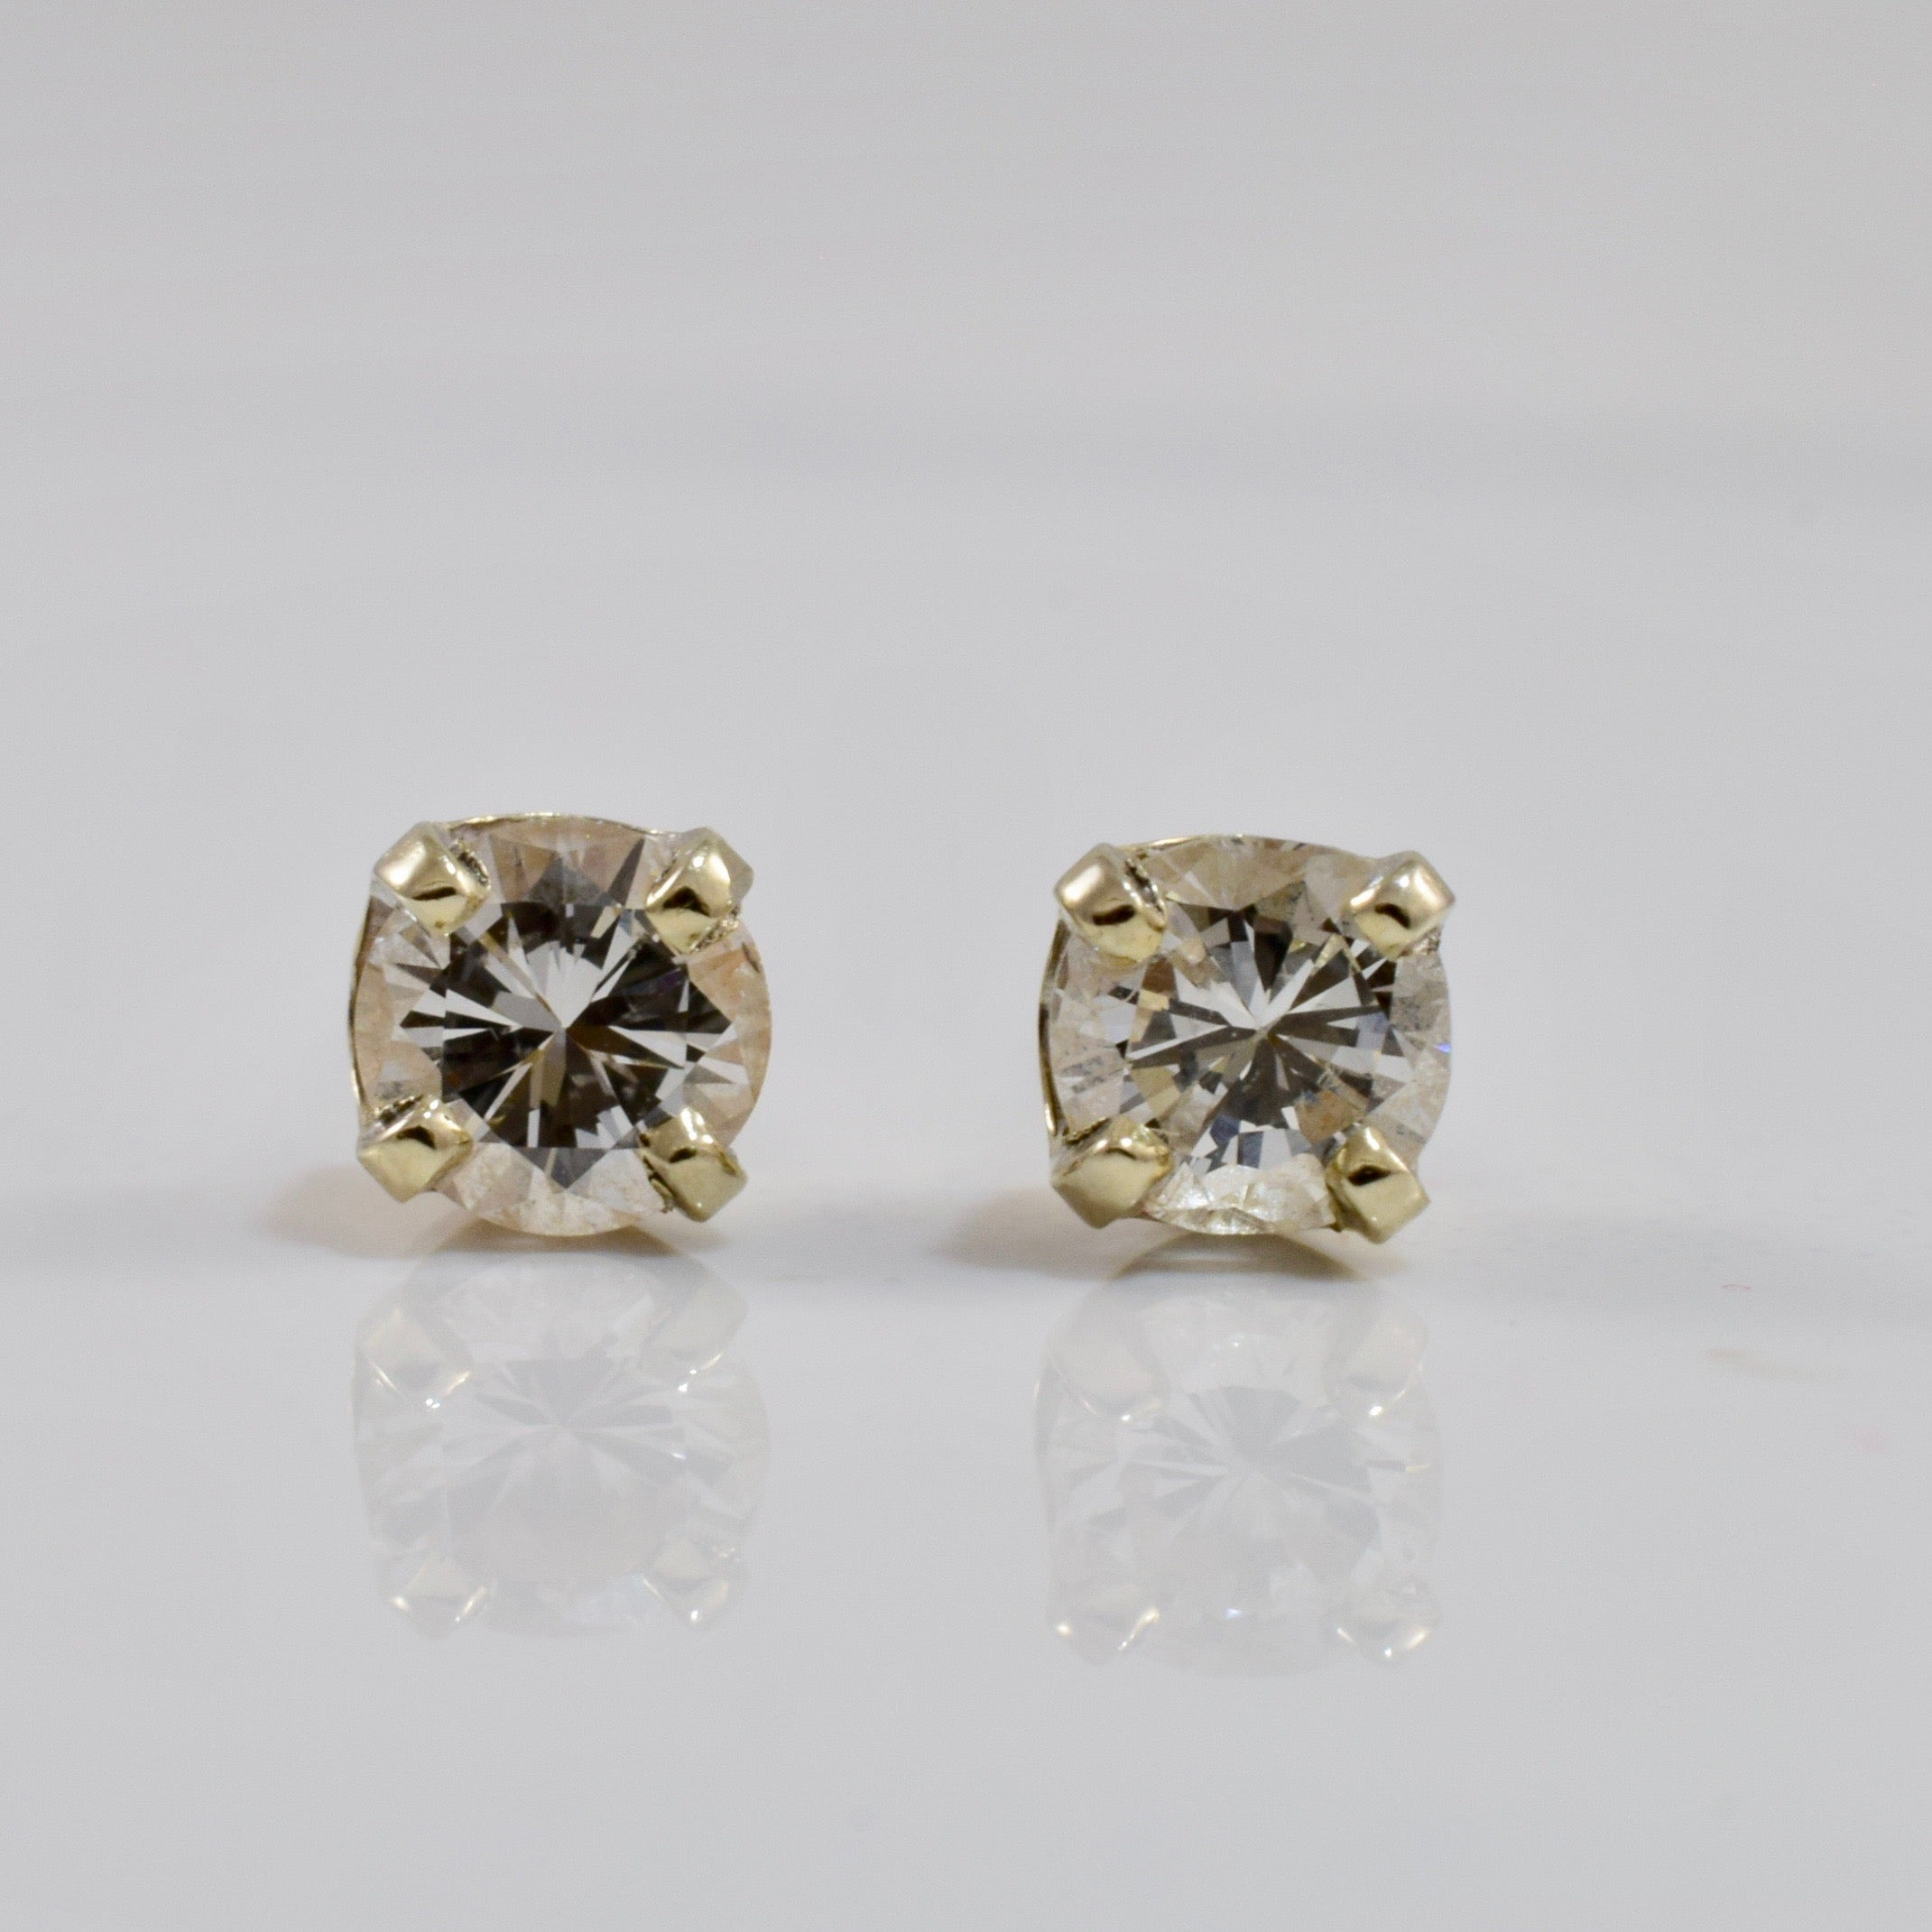 Diamond Stud Earrings | 0.38 ctw |